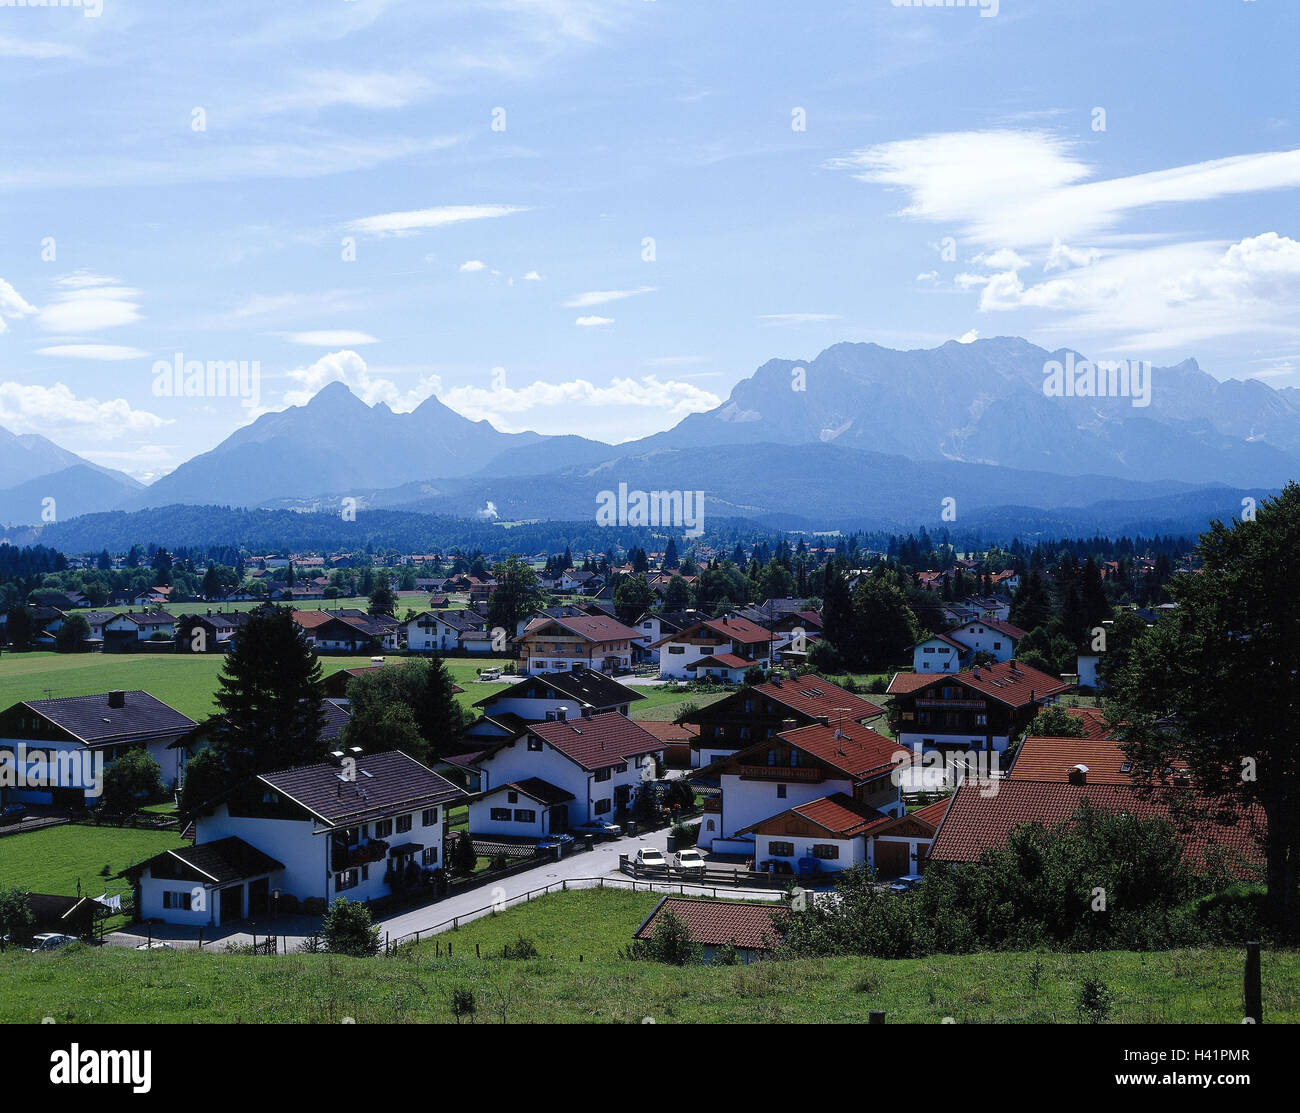 Germany, Werdenfels, embankment region, local overview, Europe, Bavaria, Upper Bavaria, place, houses, residential - Stock Image